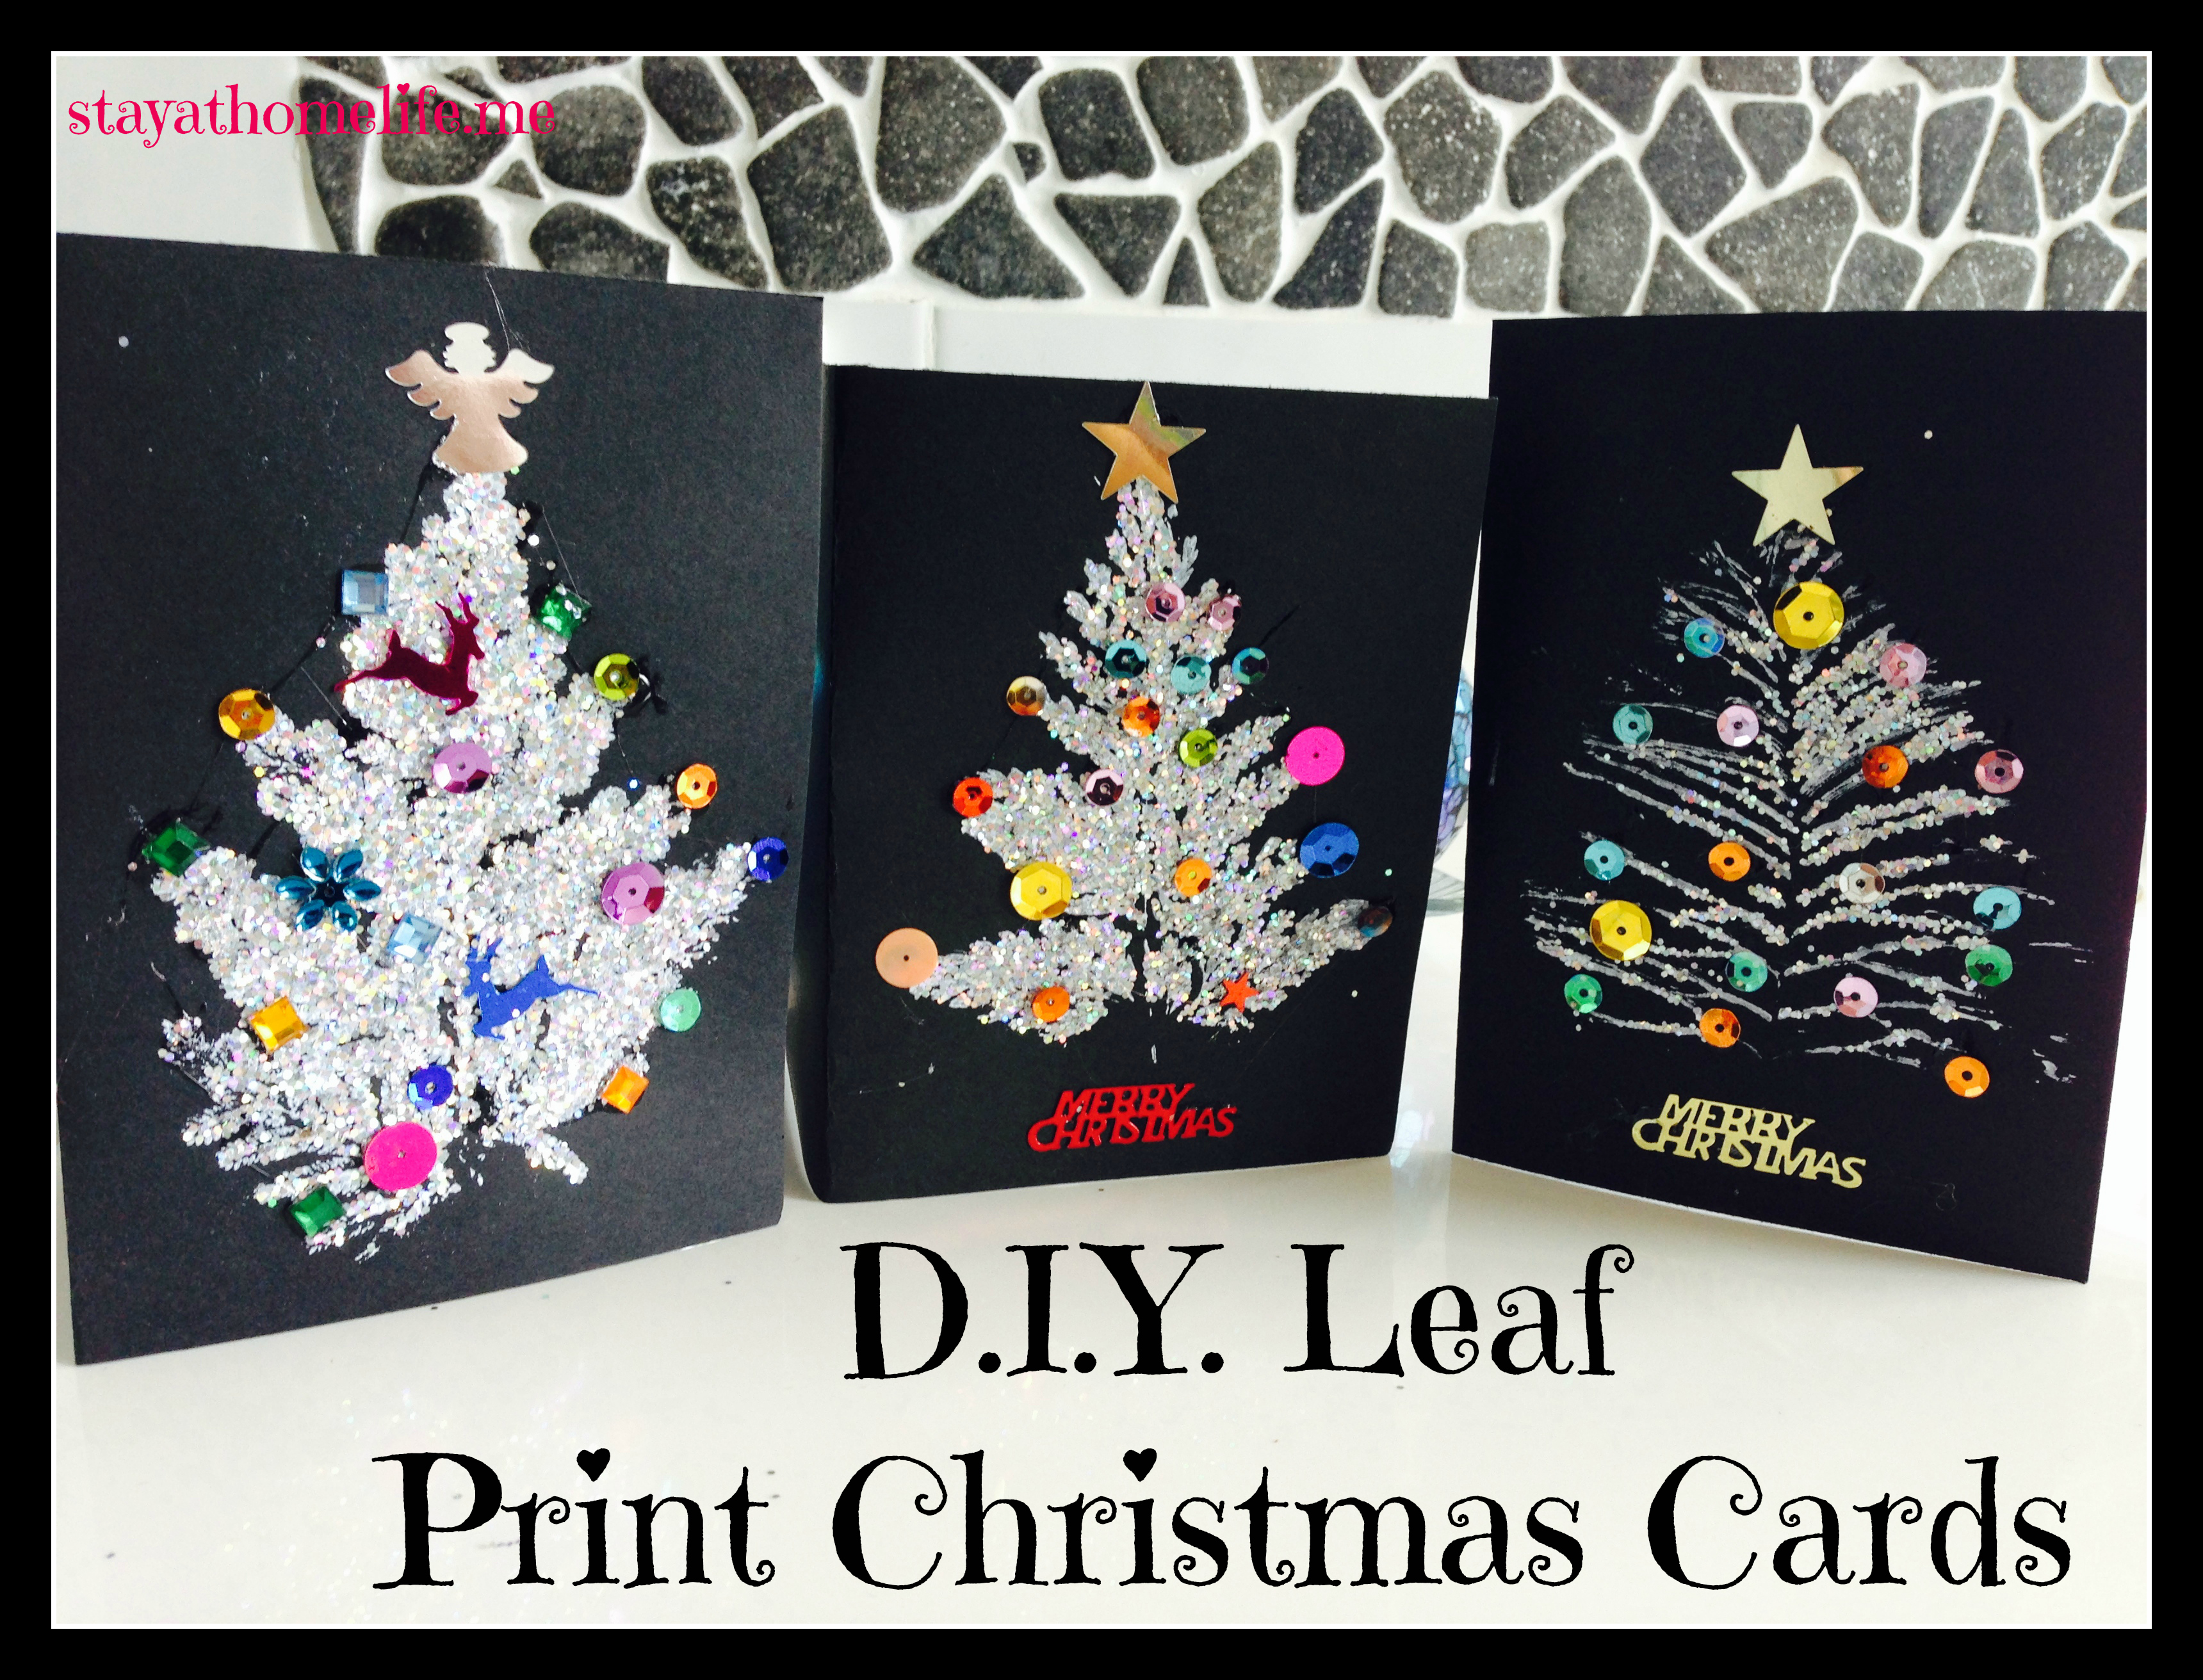 D I Y Leaf Print Christmas Cards Stay At Home Life